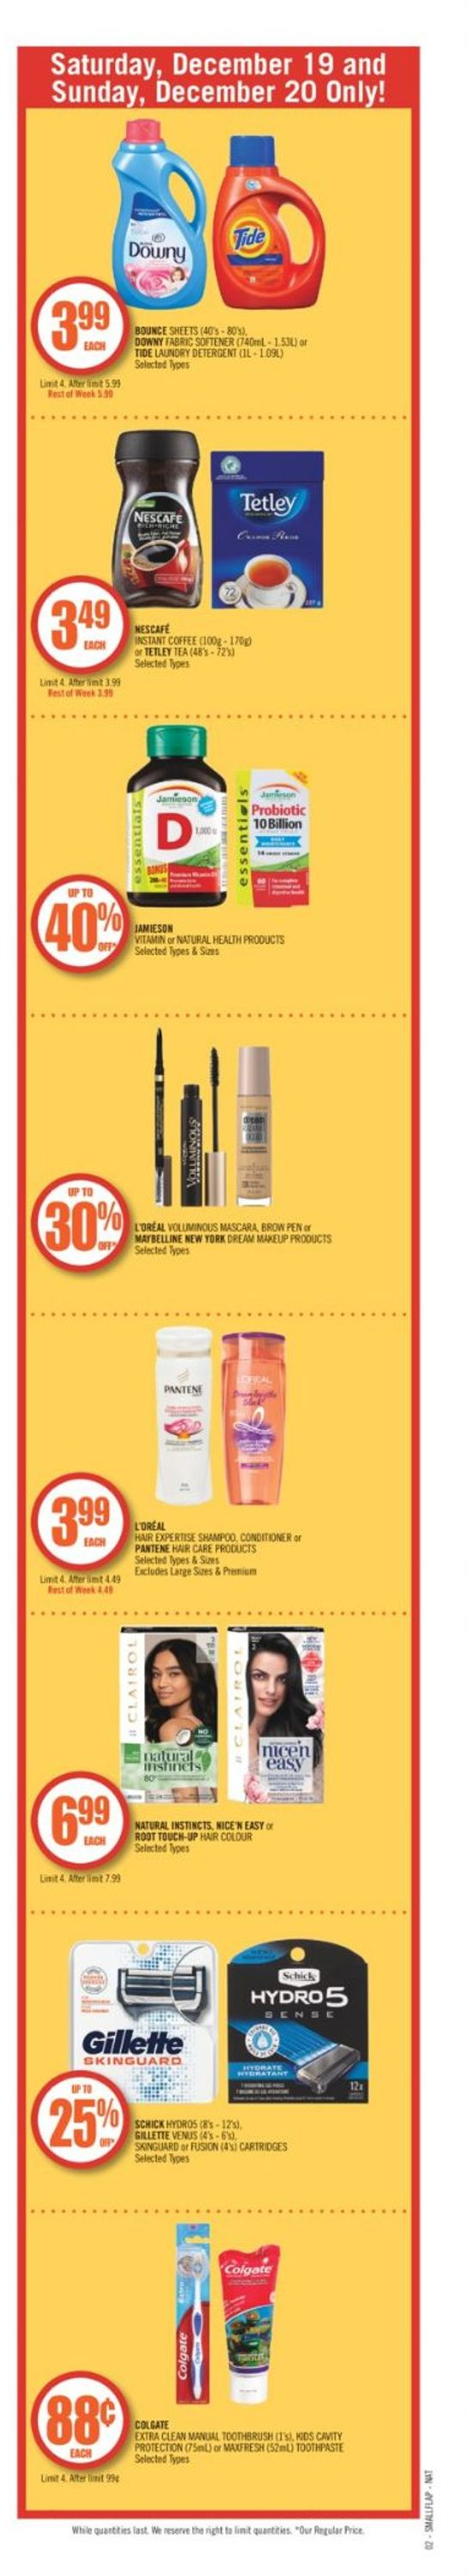 Shoppers - Holiday 2020 Flyer - 12/19-12/22/2020 (Page 3)